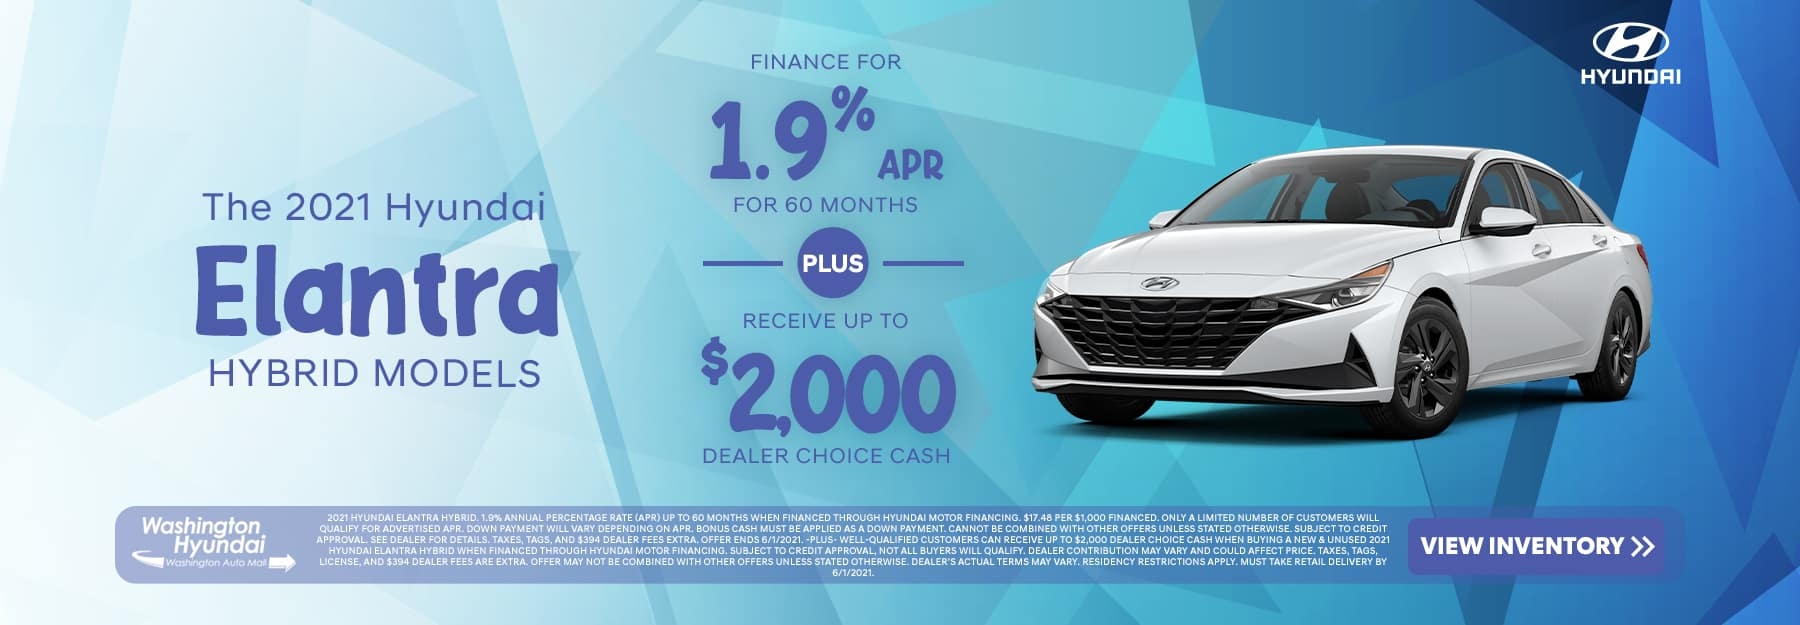 The 201 Hyundai Elantra Hybrid Models - finance for 1.9% APR for 60 months PLUS receive up to $2,000 Dealer Choice Cash